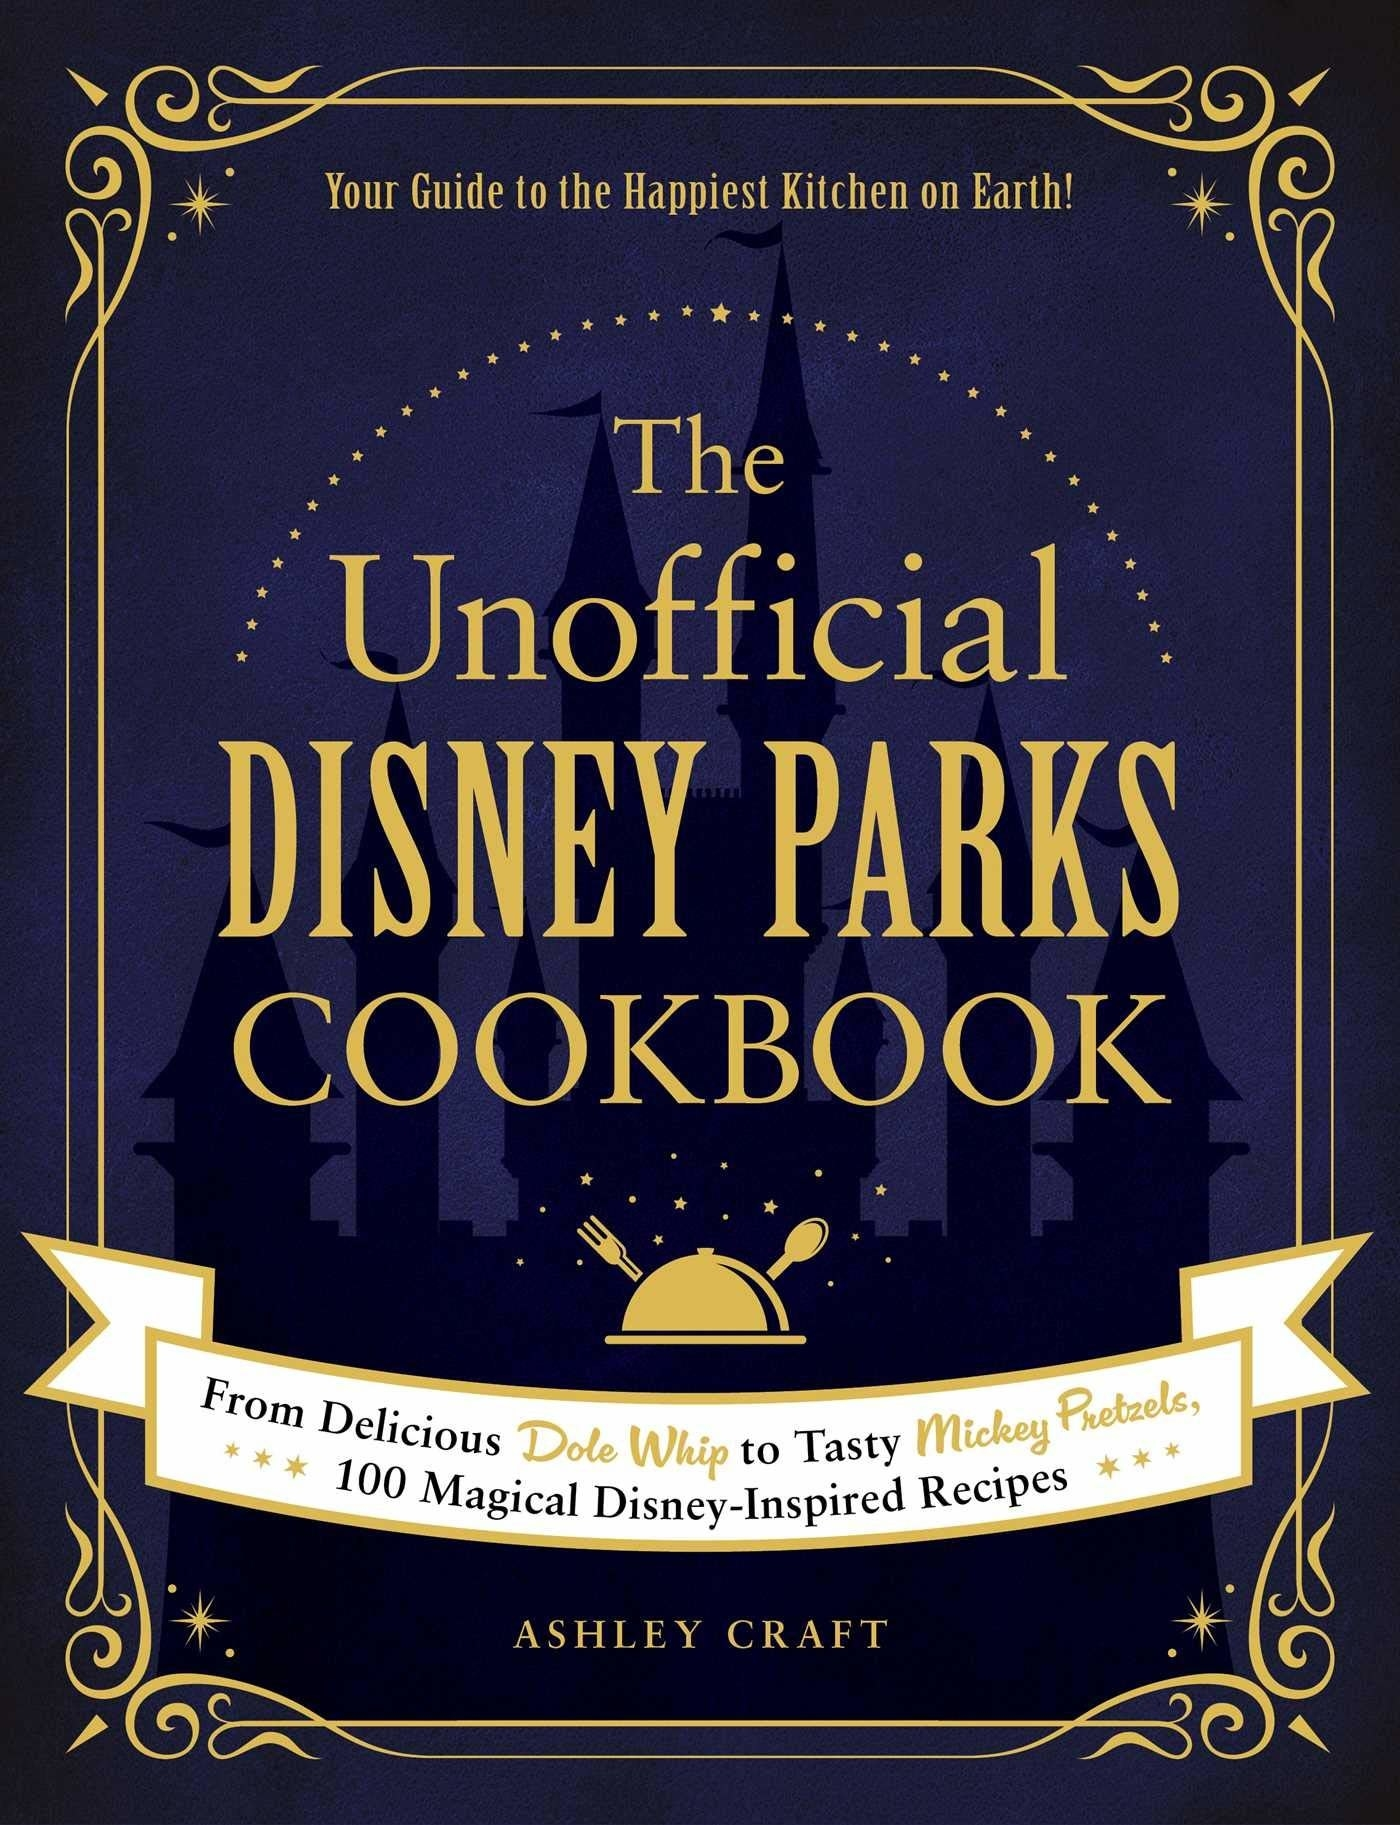 The cover of 'The Unofficial Disney Parks Cookbook' by Ashley Craft